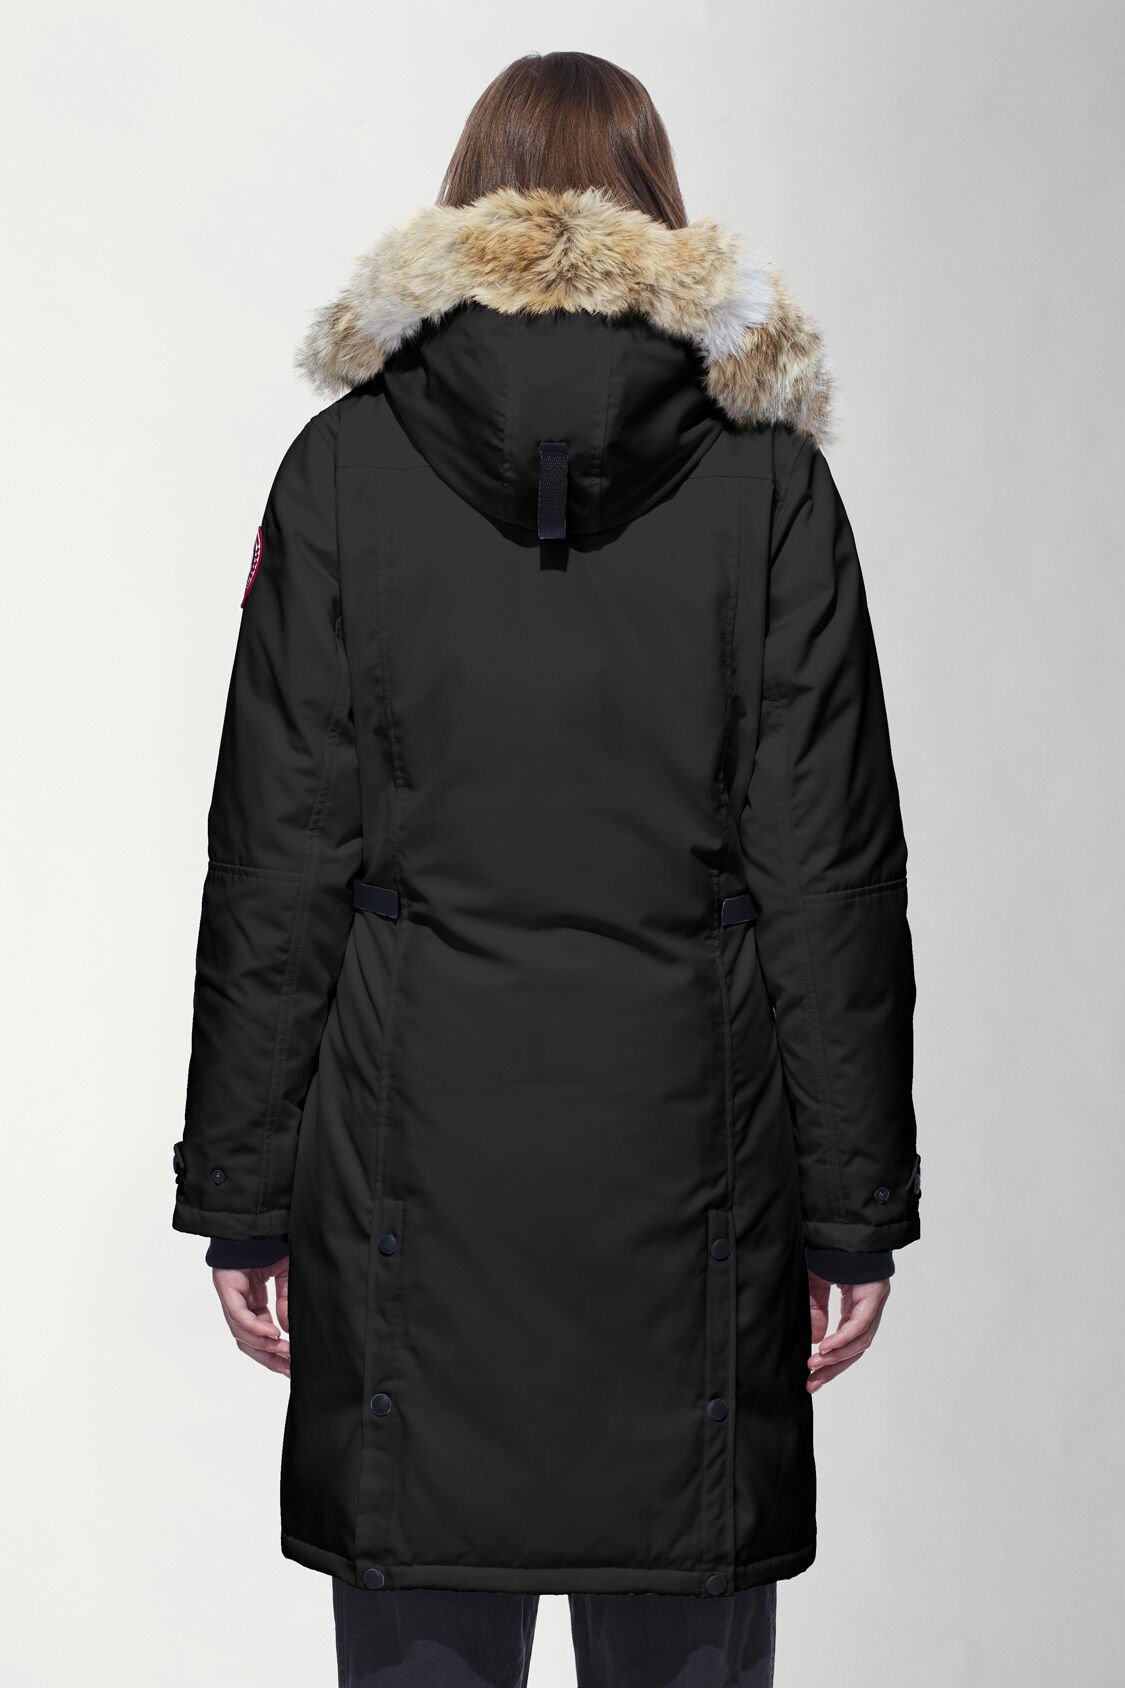 canada goose for 200 dollars